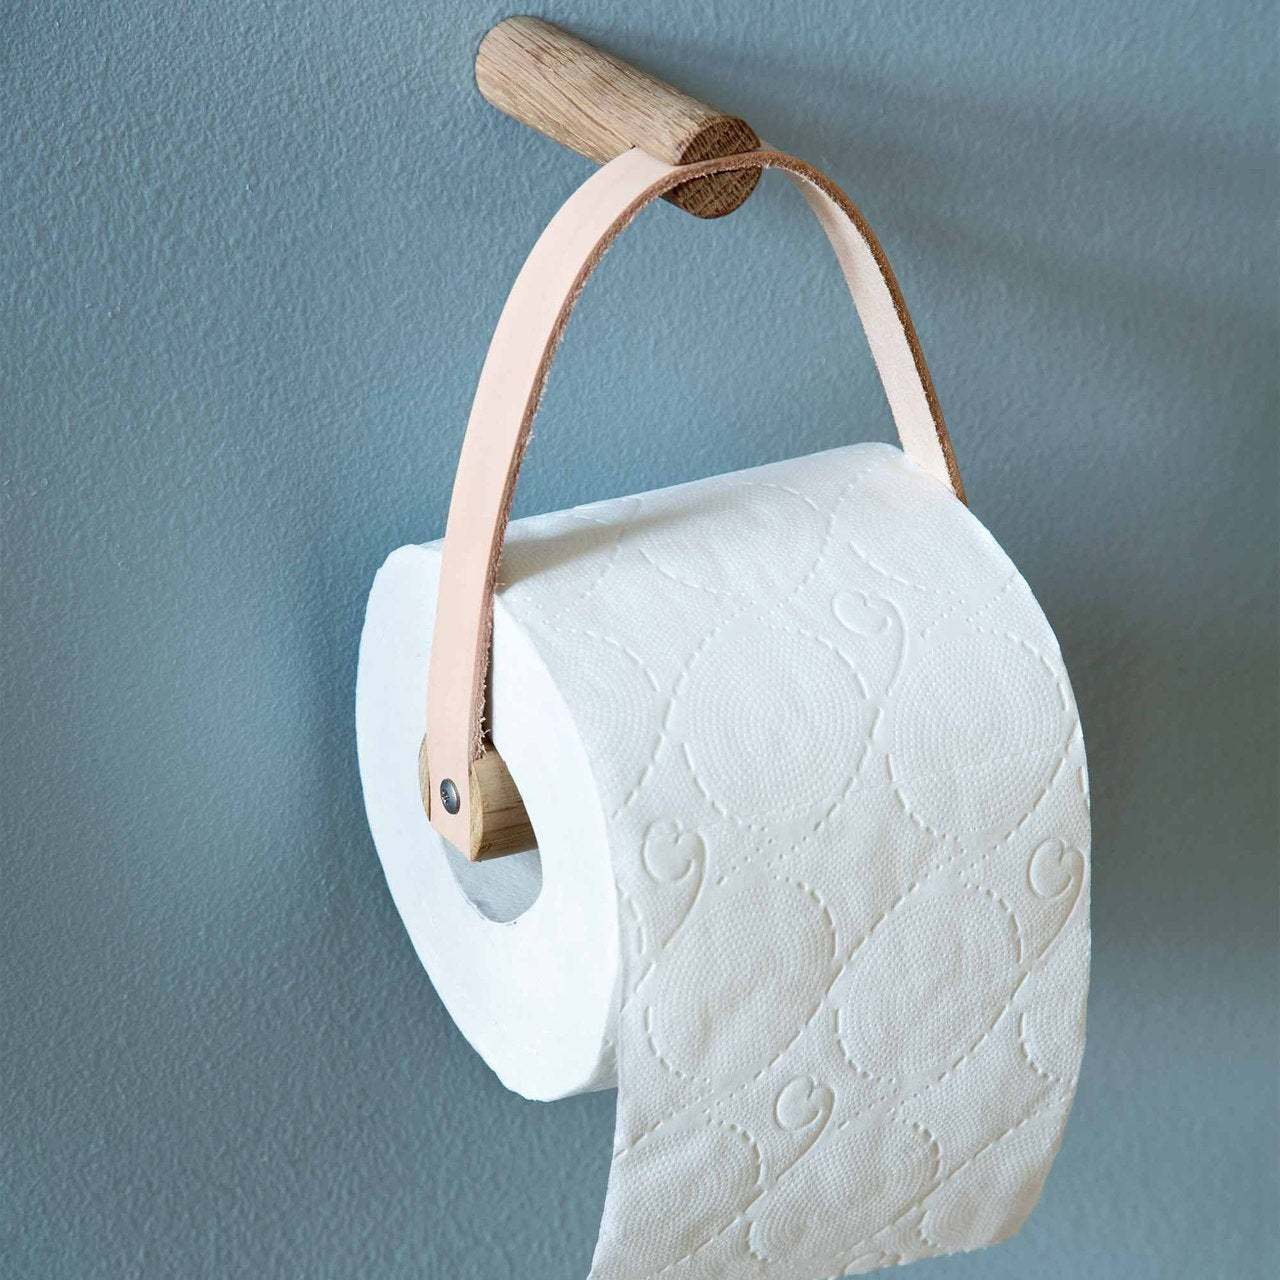 Toilet Paper Holder- Nature